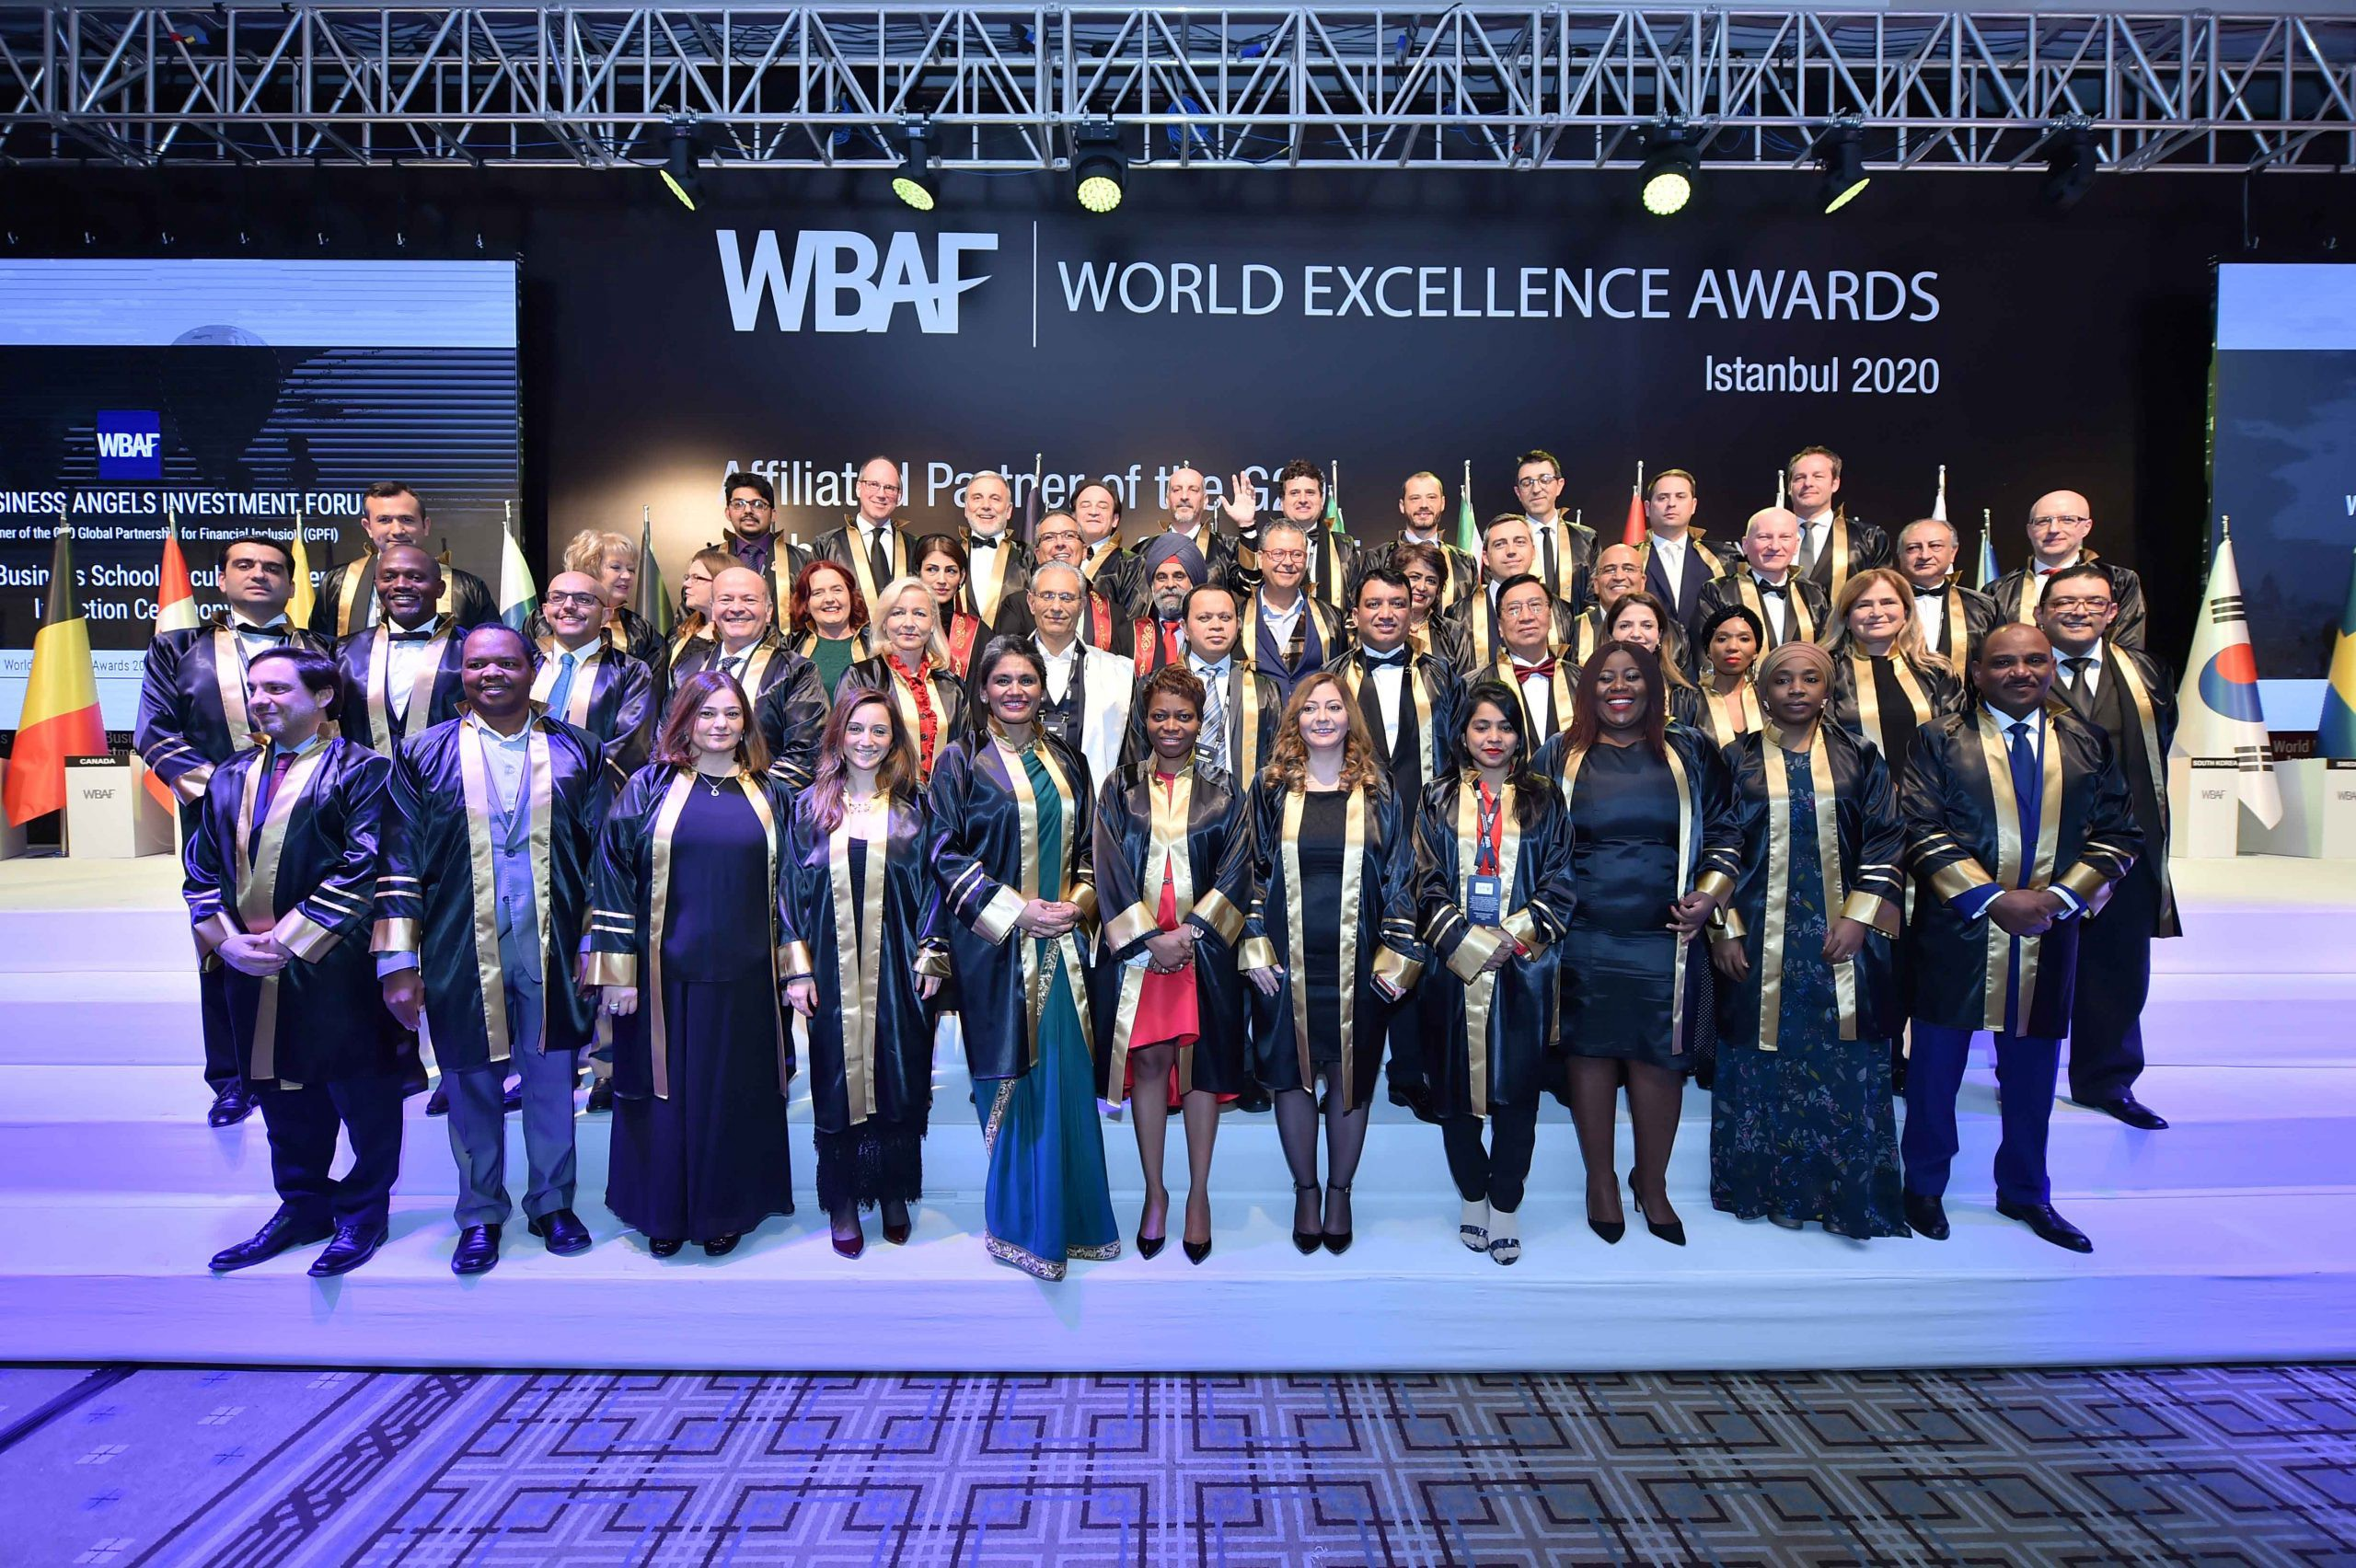 Antonio Grasso and the WBAF Global Mentor Group